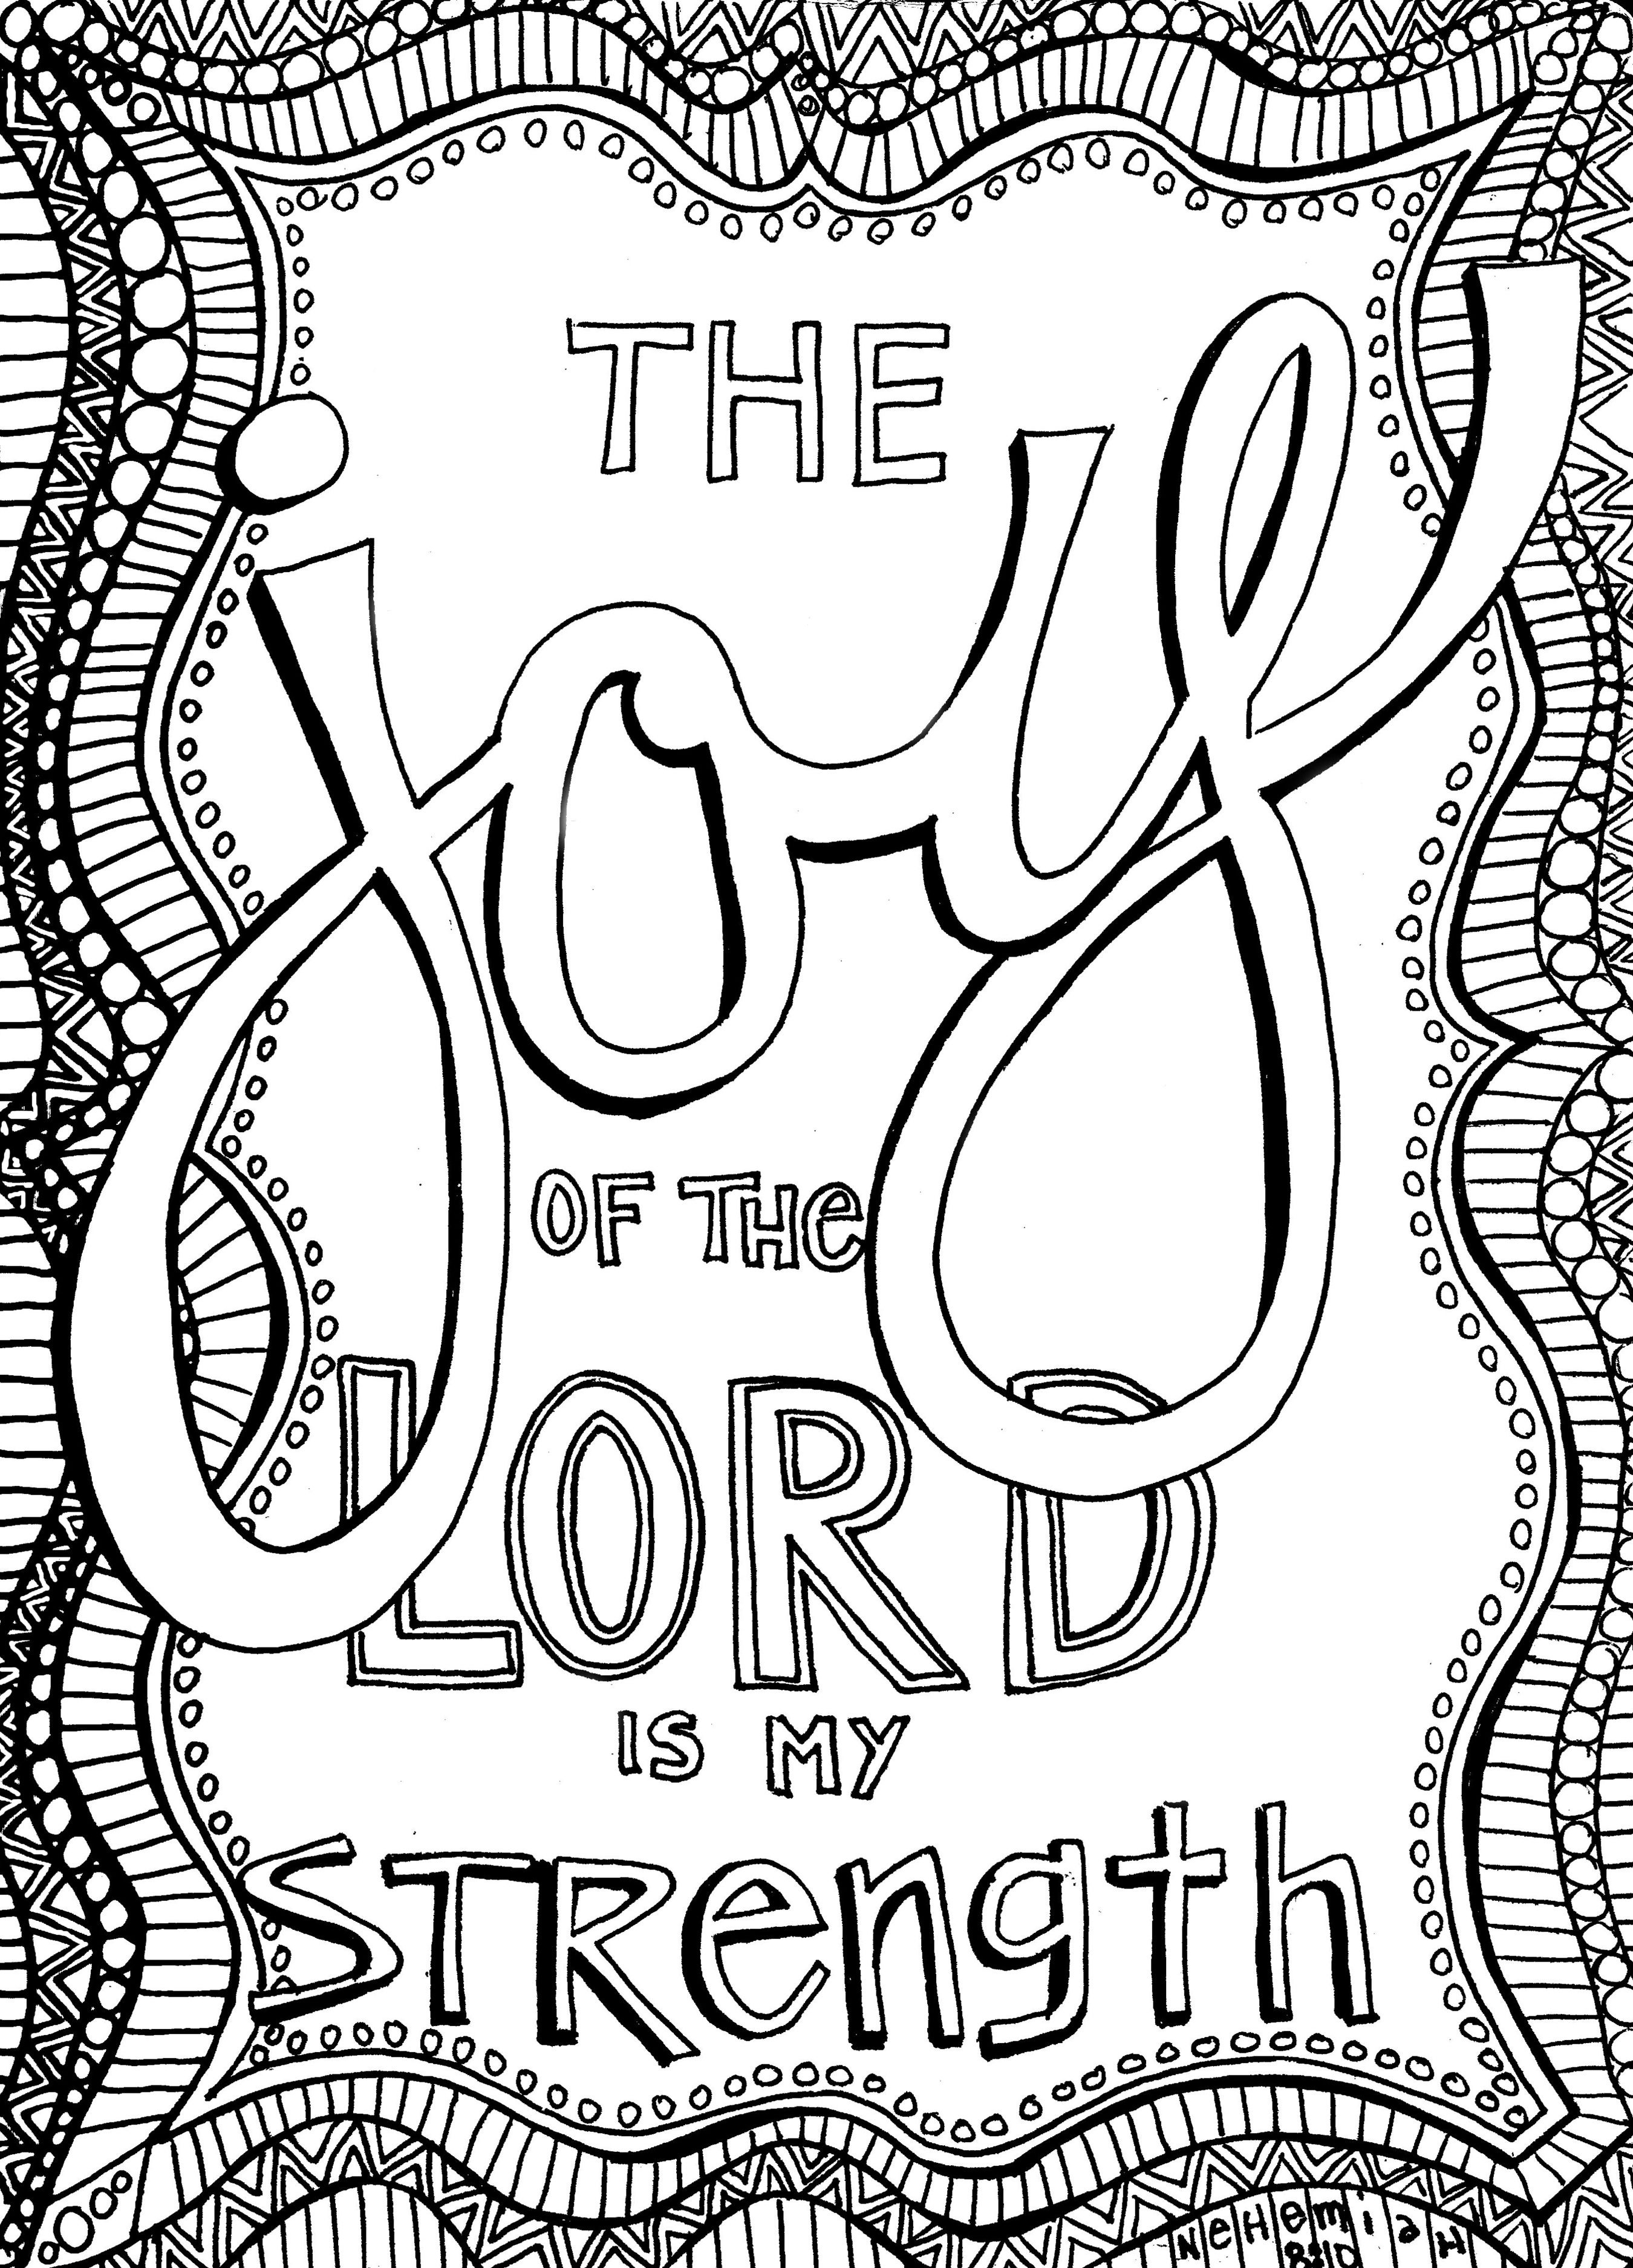 free bible coloring pages to print Collection-Awesome Free Bible Verse Coloring Pages for Adults New Ideascollider 19-b